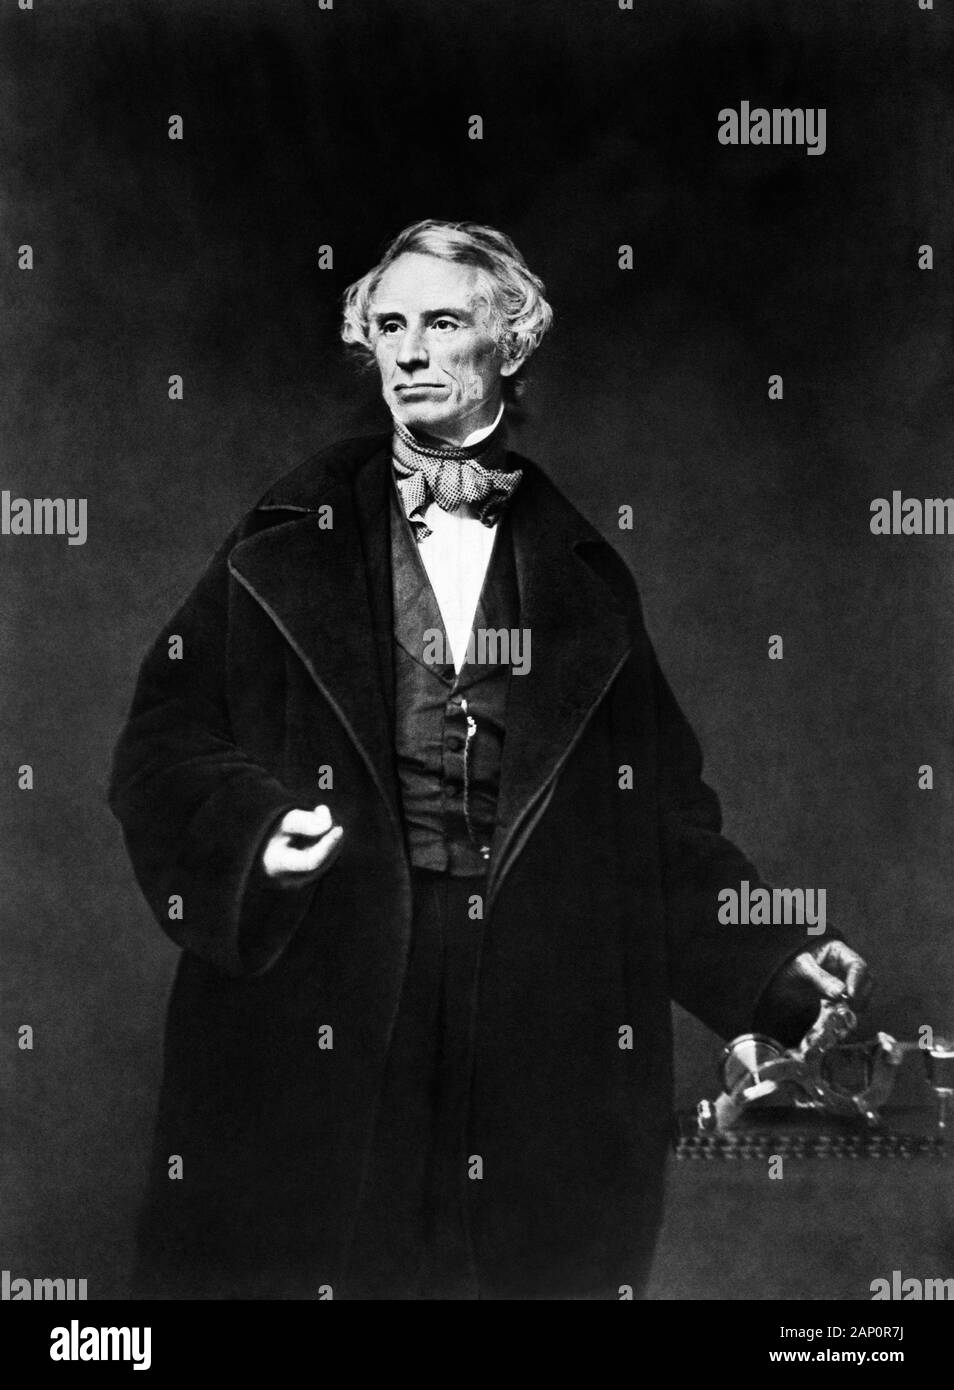 Vintage portrait photo of American painter and inventor Samuel F B Morse (1791 – 1872) – a pioneer in the development of the electric telegraph and co-creator of Morse Code. Photo circa 1855 by Mathew B Brady showing Morse with his hand on a telegraph apparatus. Stock Photo